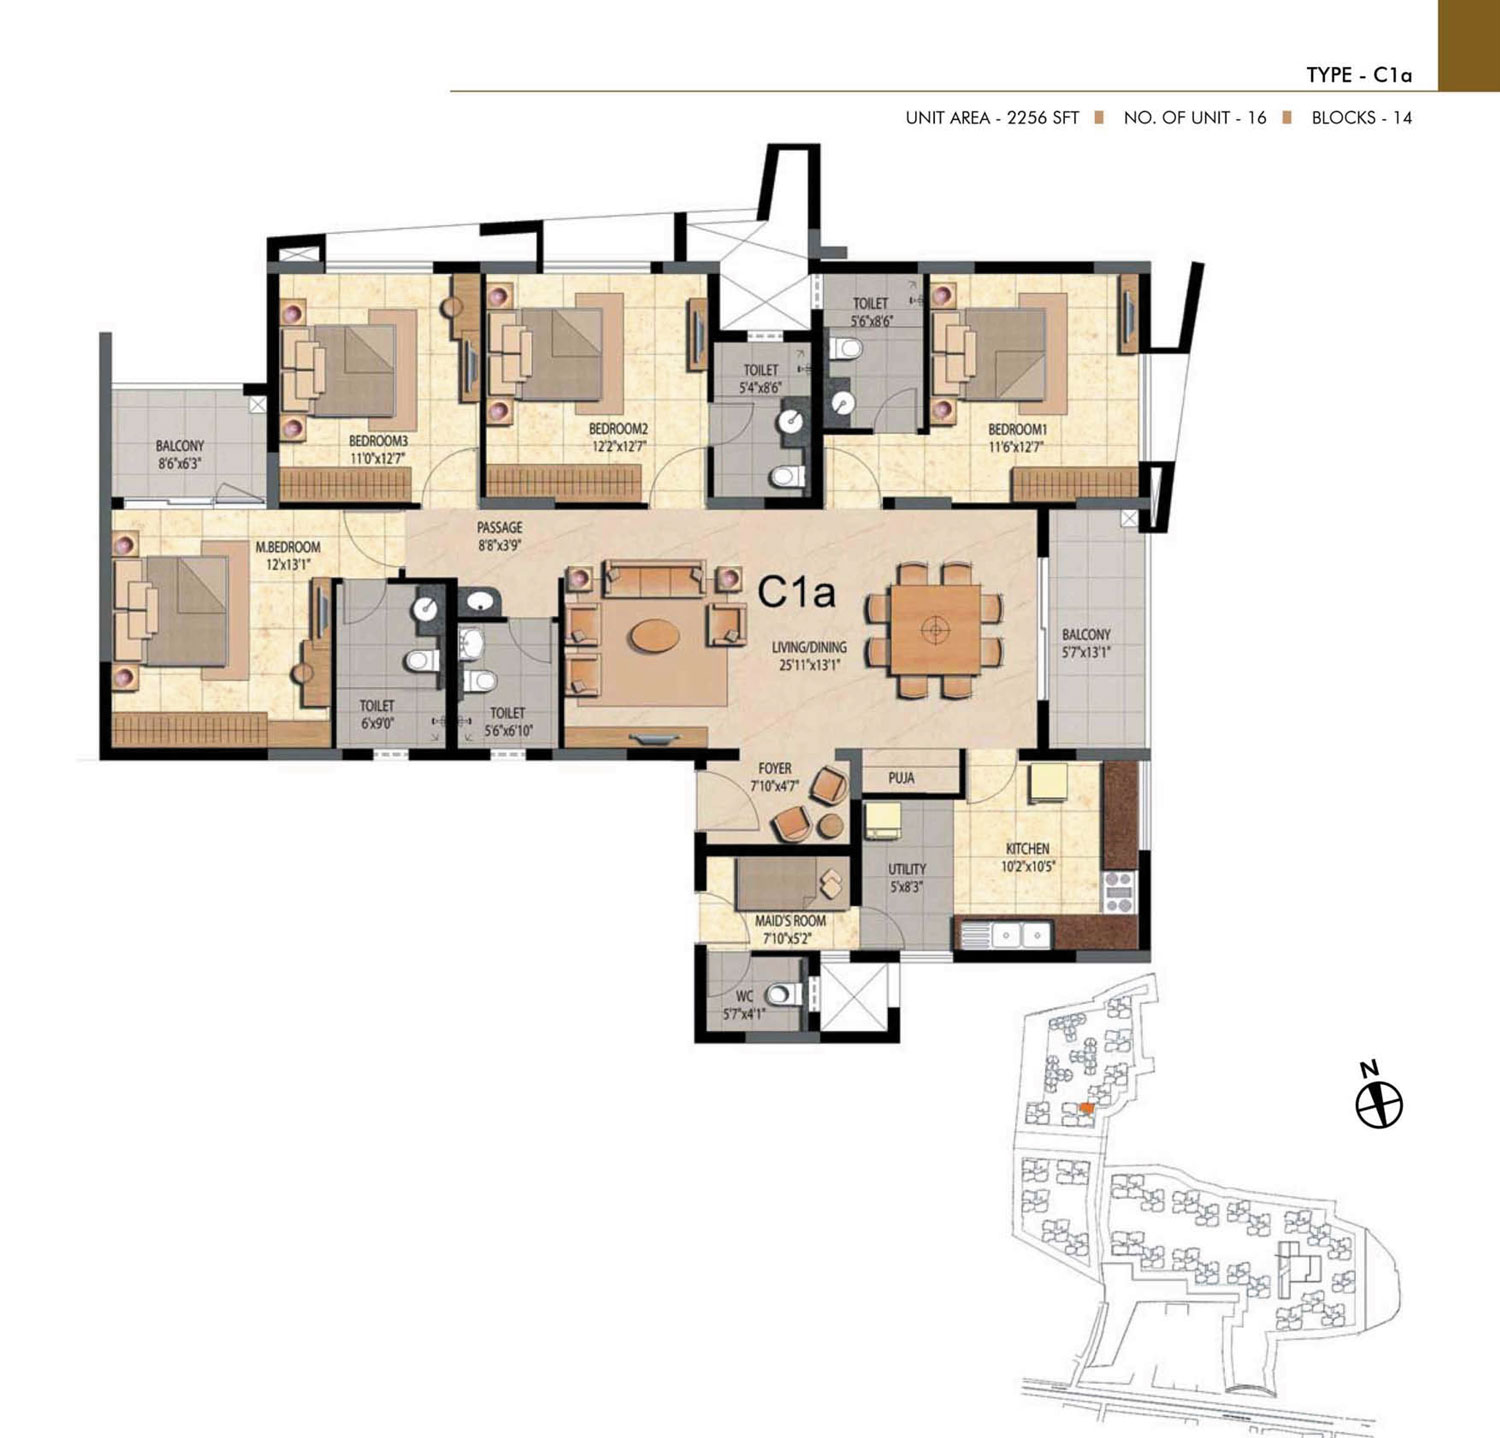 Type C1A - 4 Bed - 2256 Sq Ft